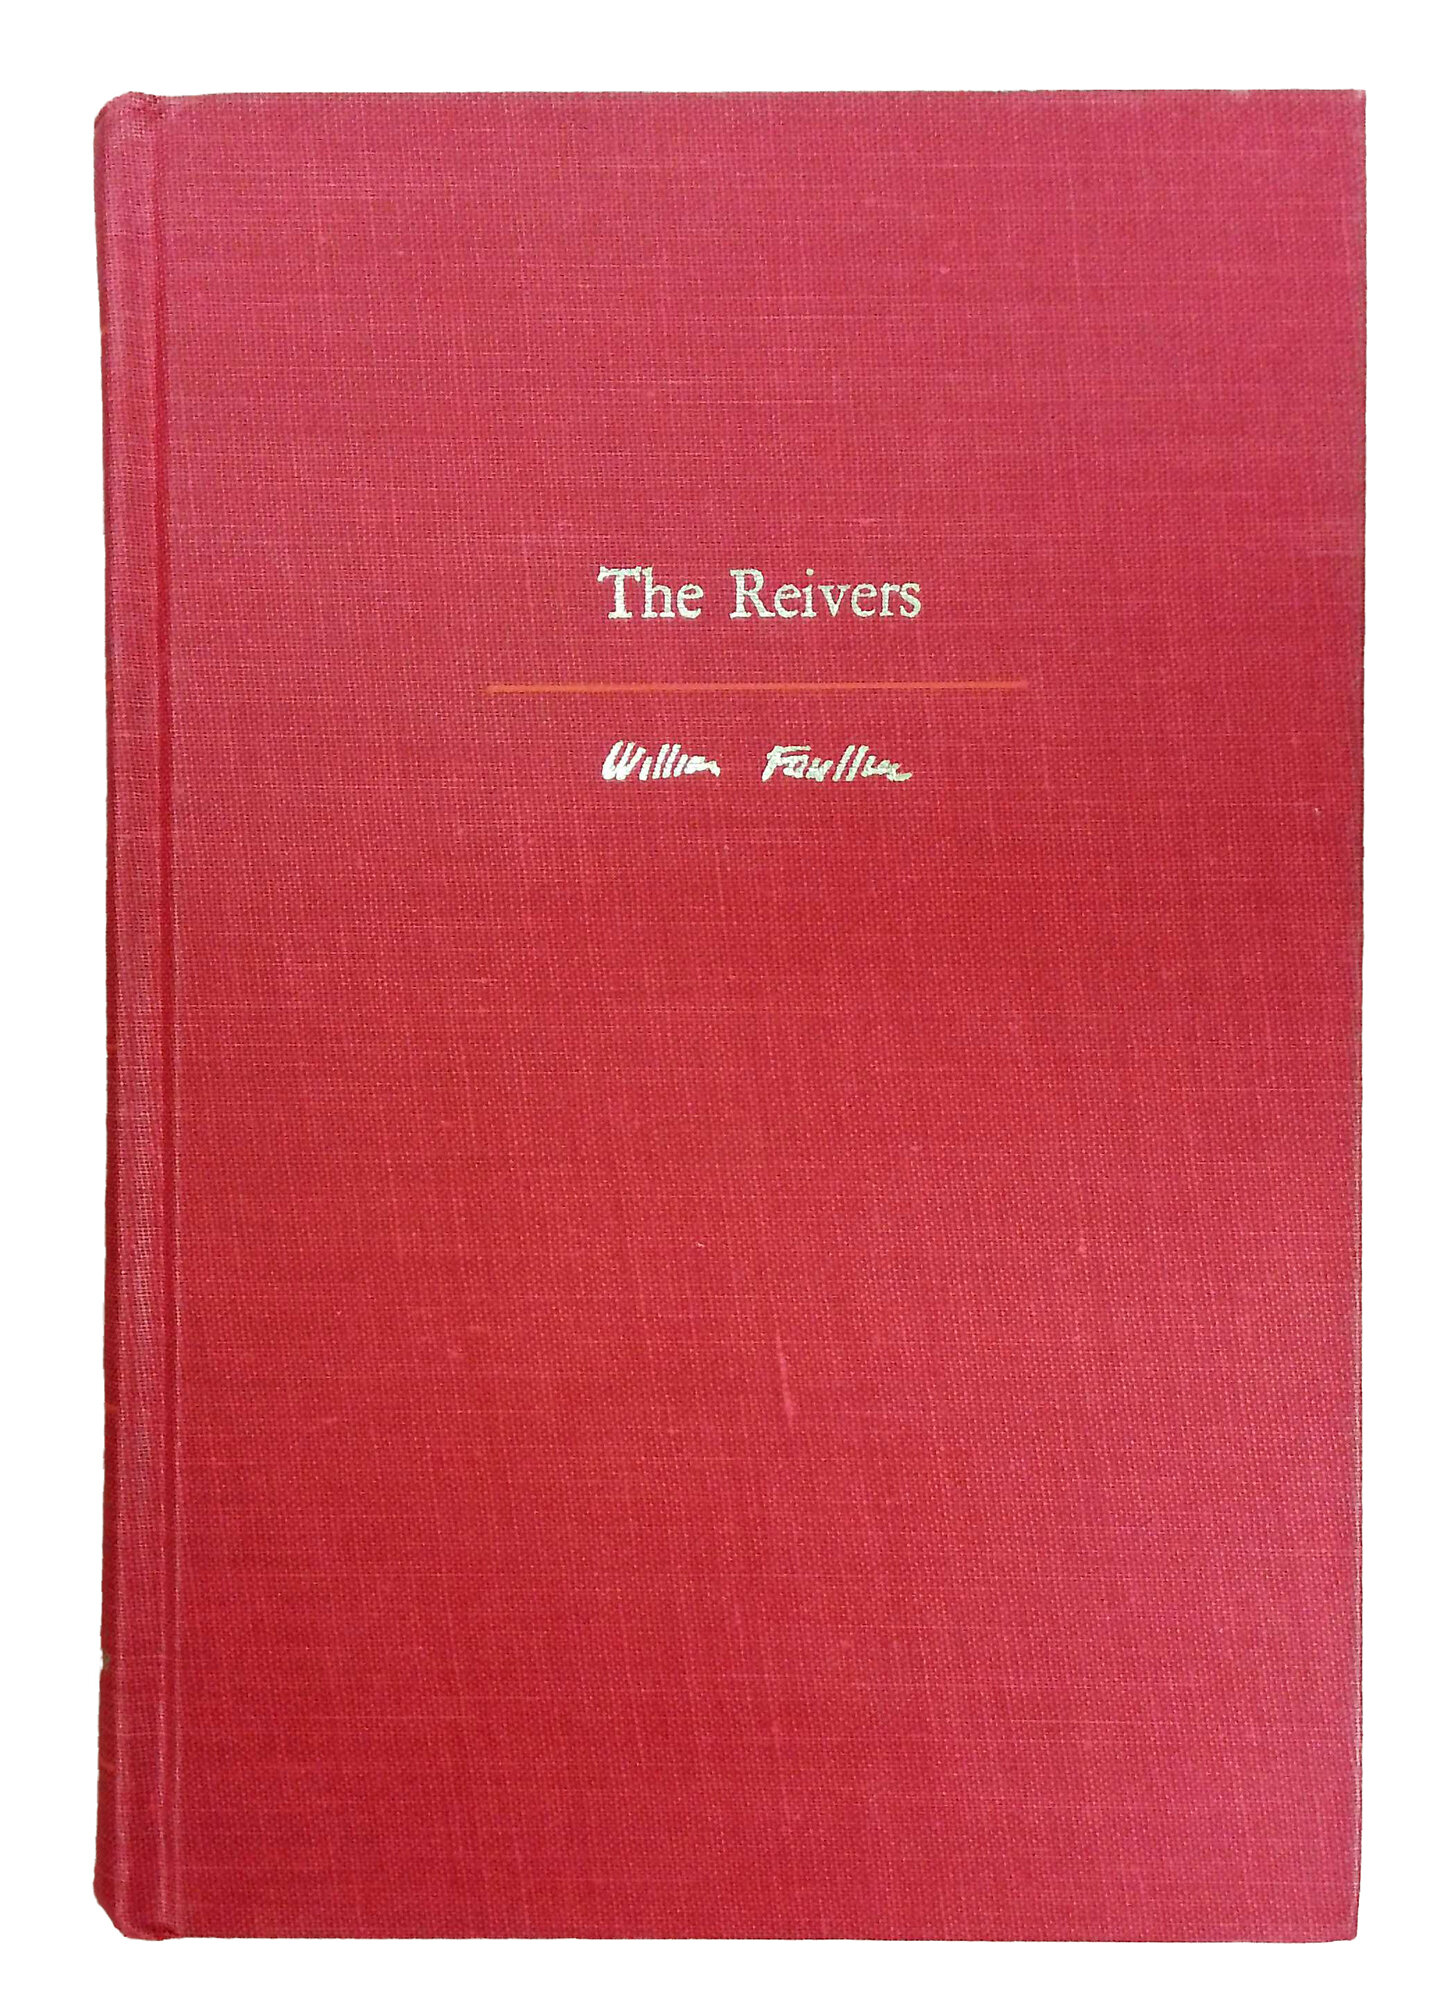 Booth Williams Rare And Collectible 1962 The Reivers By William Faulkner Authentic Decorative Book Wayfair